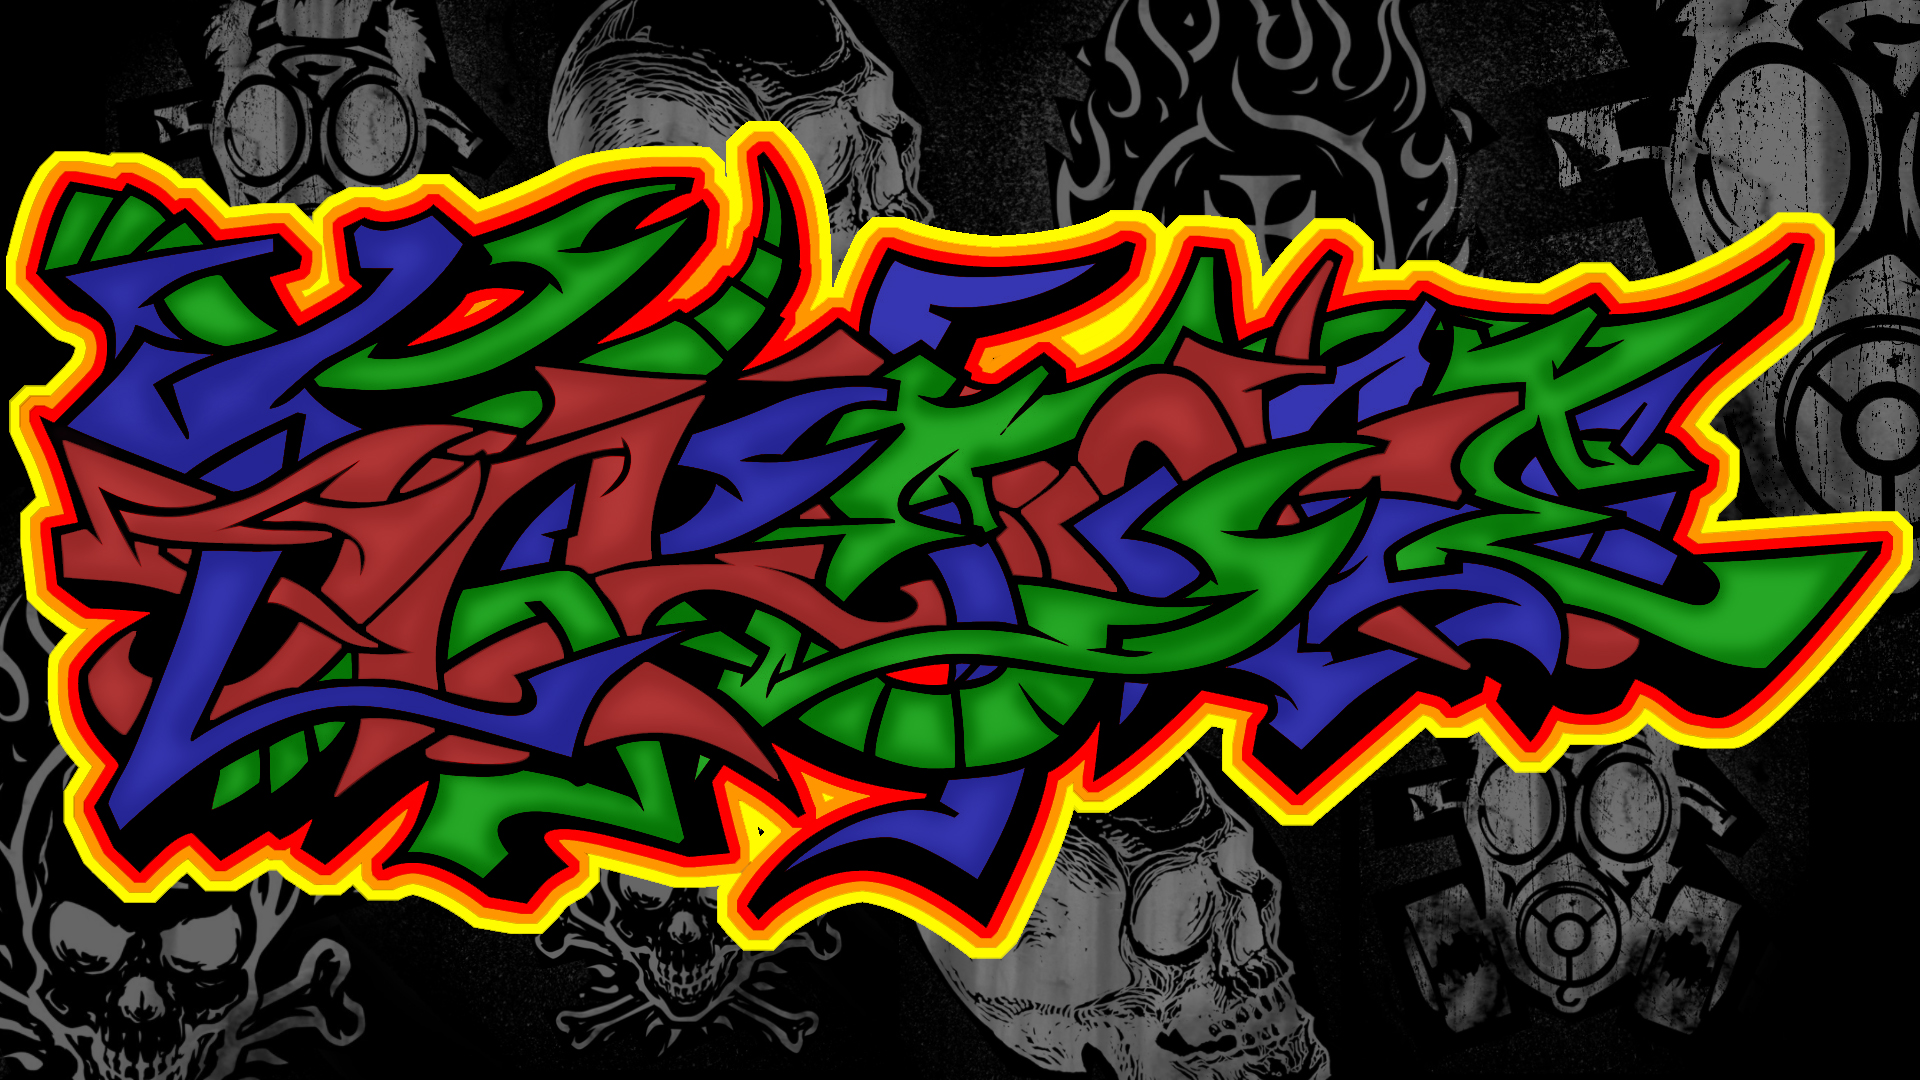 Awesome graffiti backgrounds wallpaper 1920x1080 voltagebd Image collections